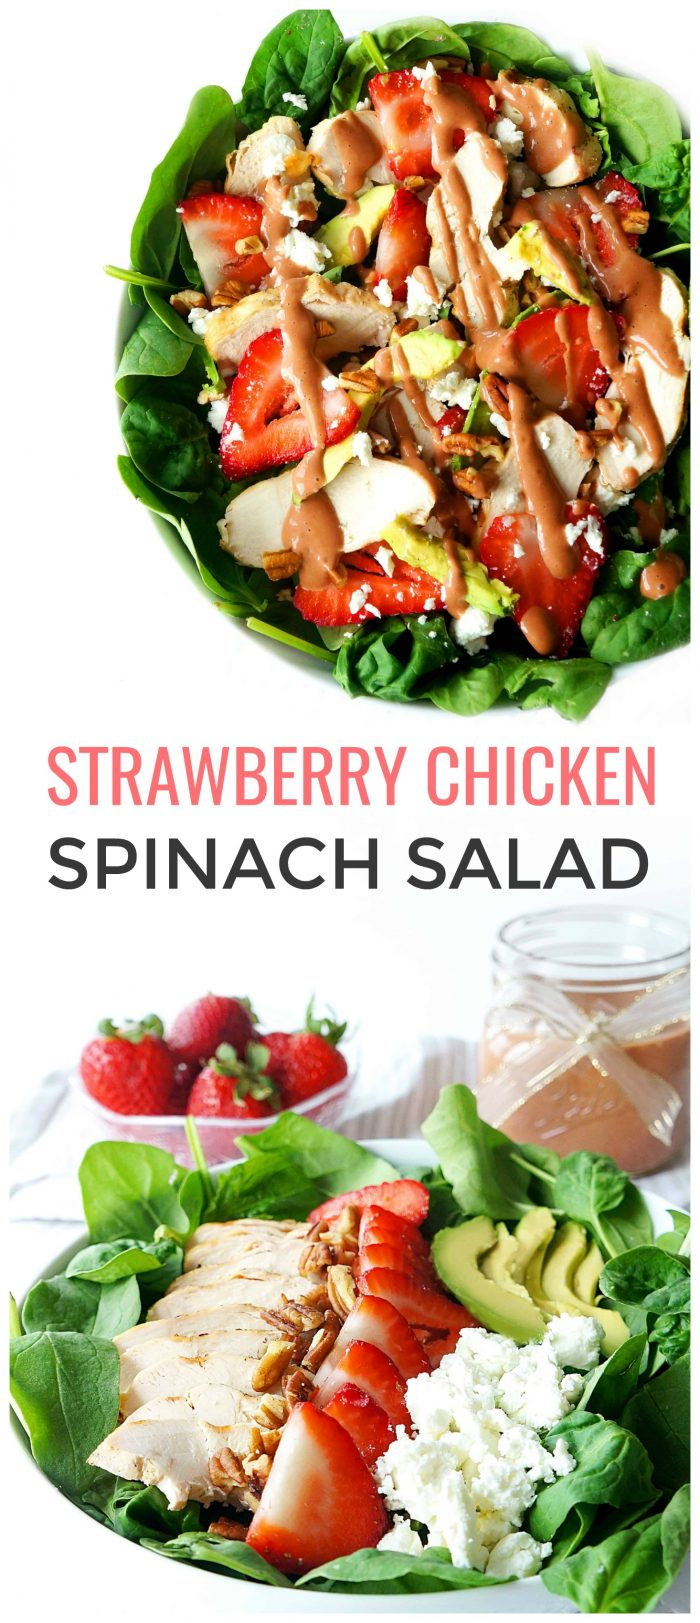 This strawberry spinach salad is a light, healthy and filling salad that's packed with refreshing flavours and nutrients and gets a boost of protein from the grilled chicken! The strawberry salad dressing is super refreshing and the perfect way to make use of the seasonal produce this summer. {Gluten-free}